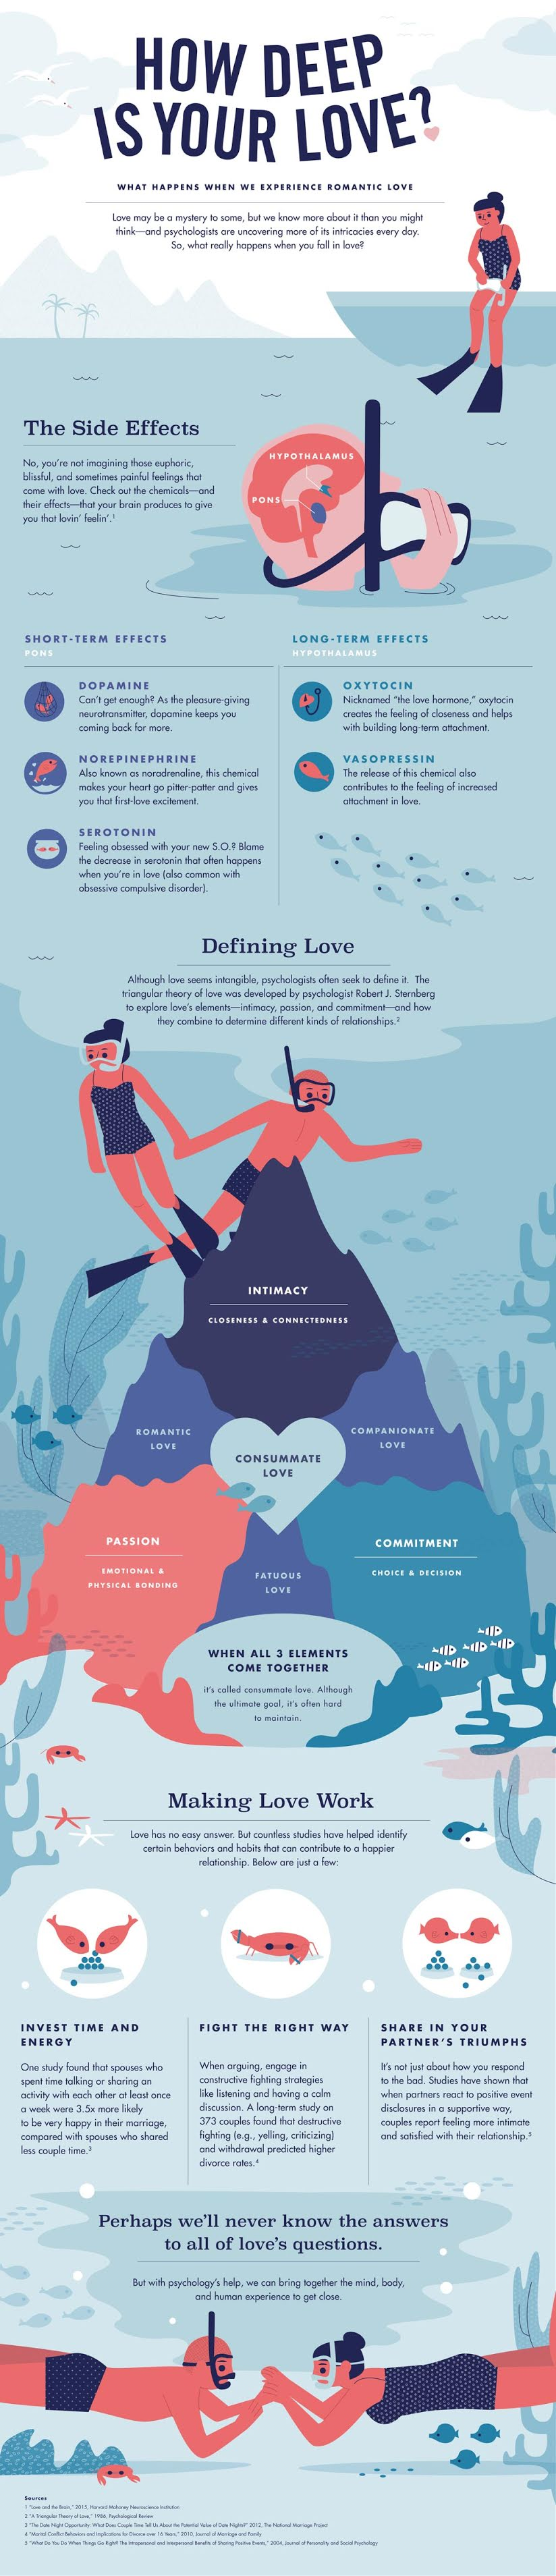 How Deep Is Your Love? #infographic